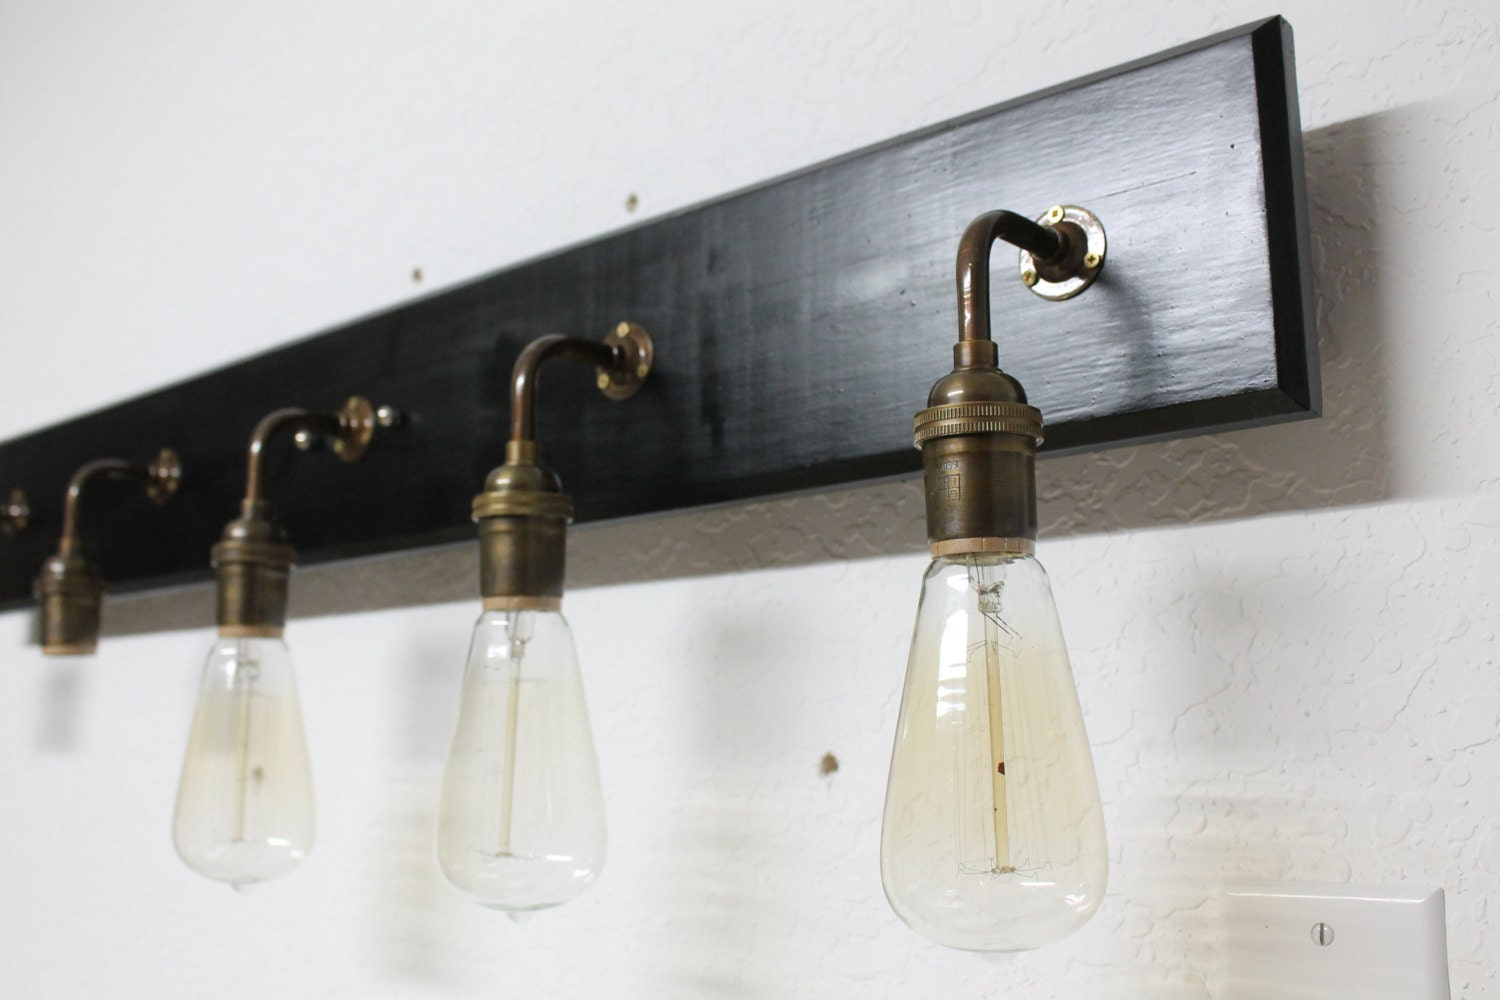 Antique Bathroom Vanity Lights : Bathroom Vanity Lamp Antique Brass Lighting by PartyandHomeDesign